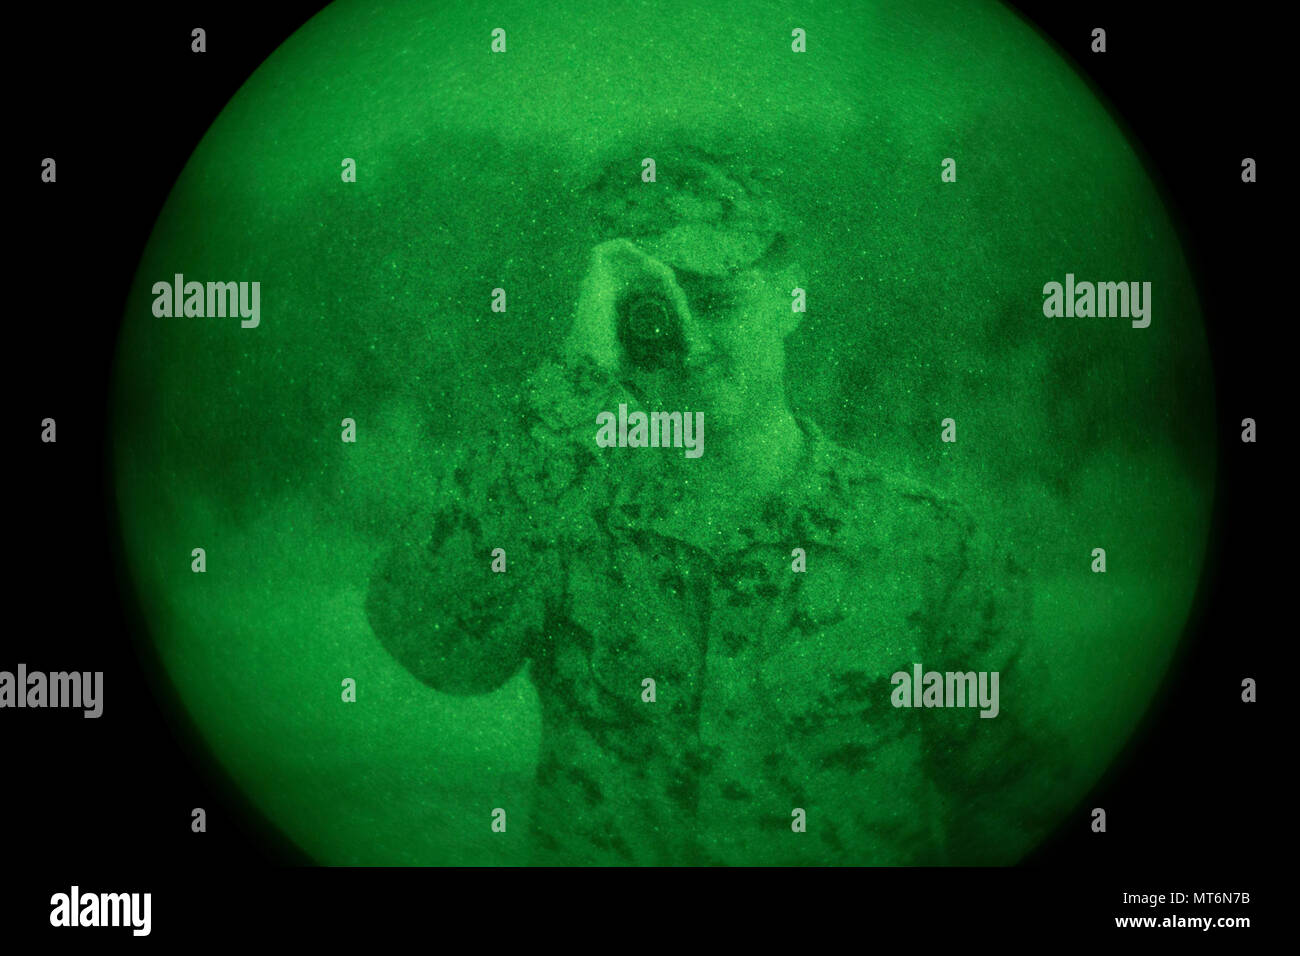 U.S. Marine Corps Cpl. Estuardo Najarro, bust instructor, 2nd Marine Division, looks through a PVS-14 night vision device during Career Orientated Training for Midshipmen (CORTRAMID) Marine Week, Camp Lejeune, N.C., July 25, 2017. The purpose of CORTRAMID is to expose students to opportunities in the Fleet Marine Forces and generate an interest in a Marine Corps commission. (U.S. Marine Corps photo by Lance Cpl. Ashley D. Gomez) Stock Photo